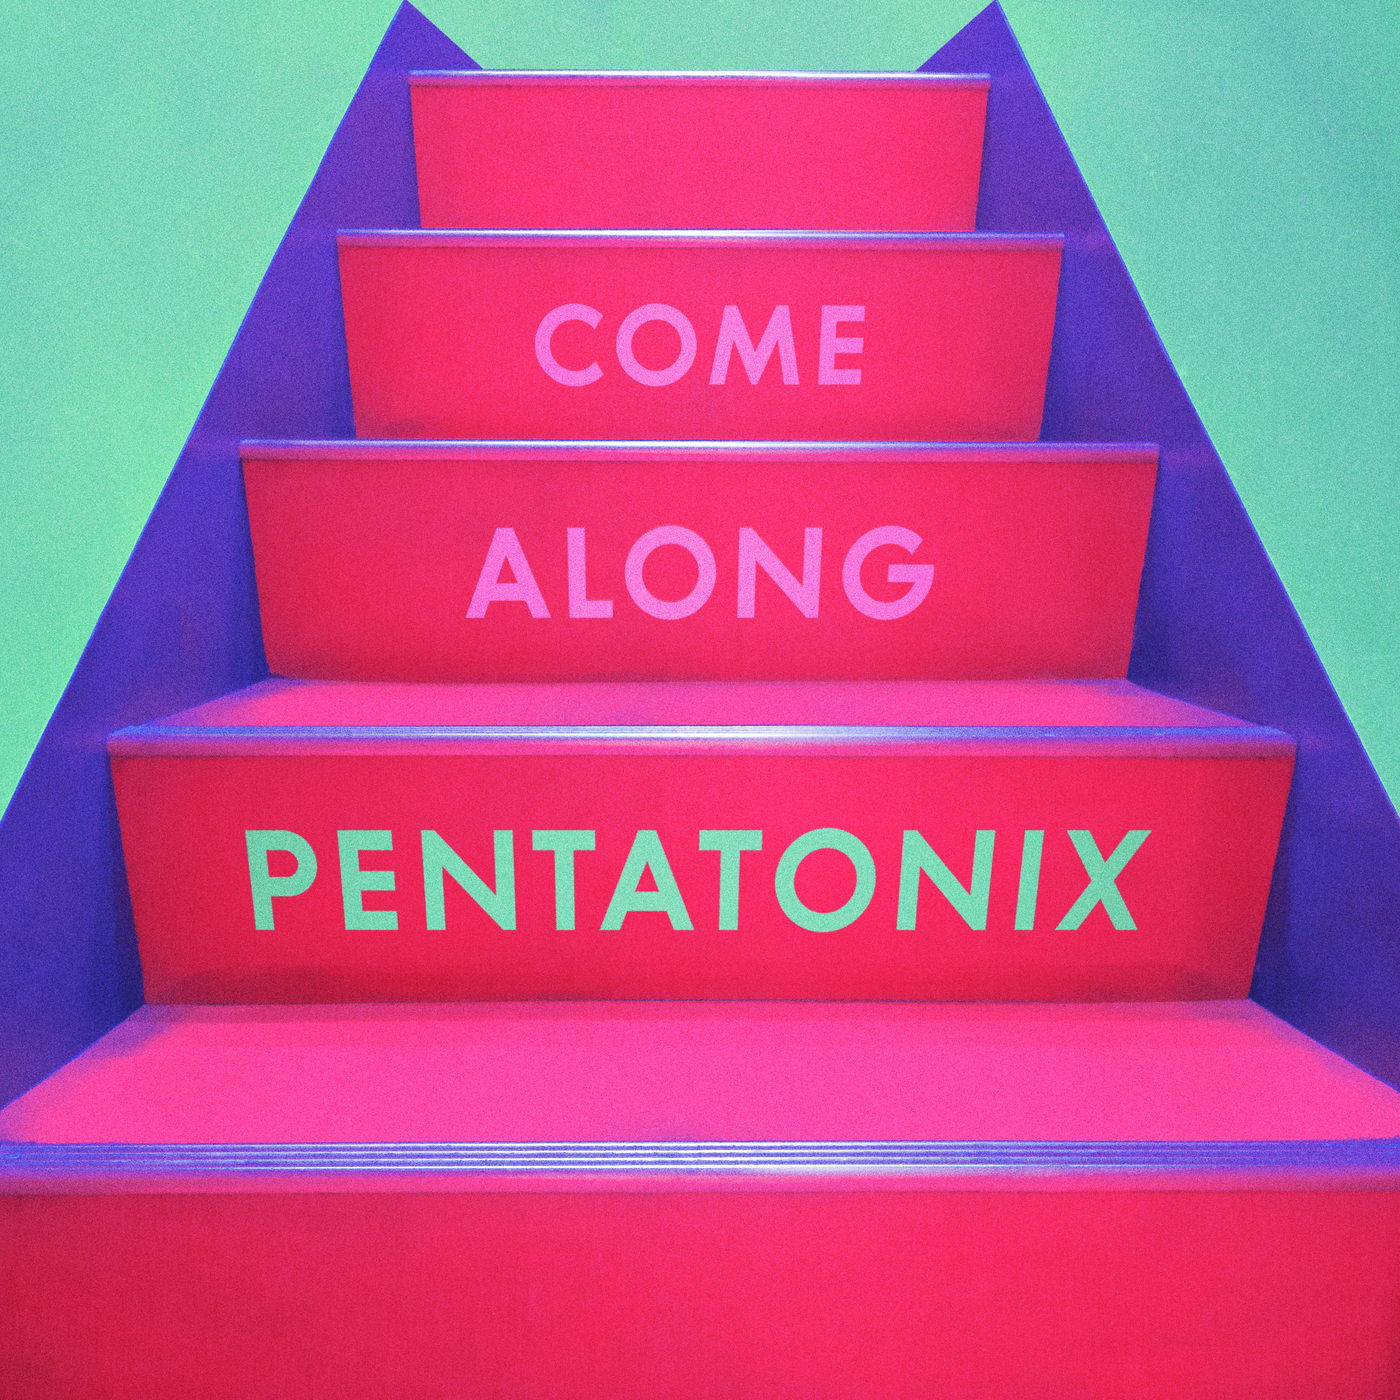 Pentatonix Radio: Listen to Free Music & Get The Latest Info